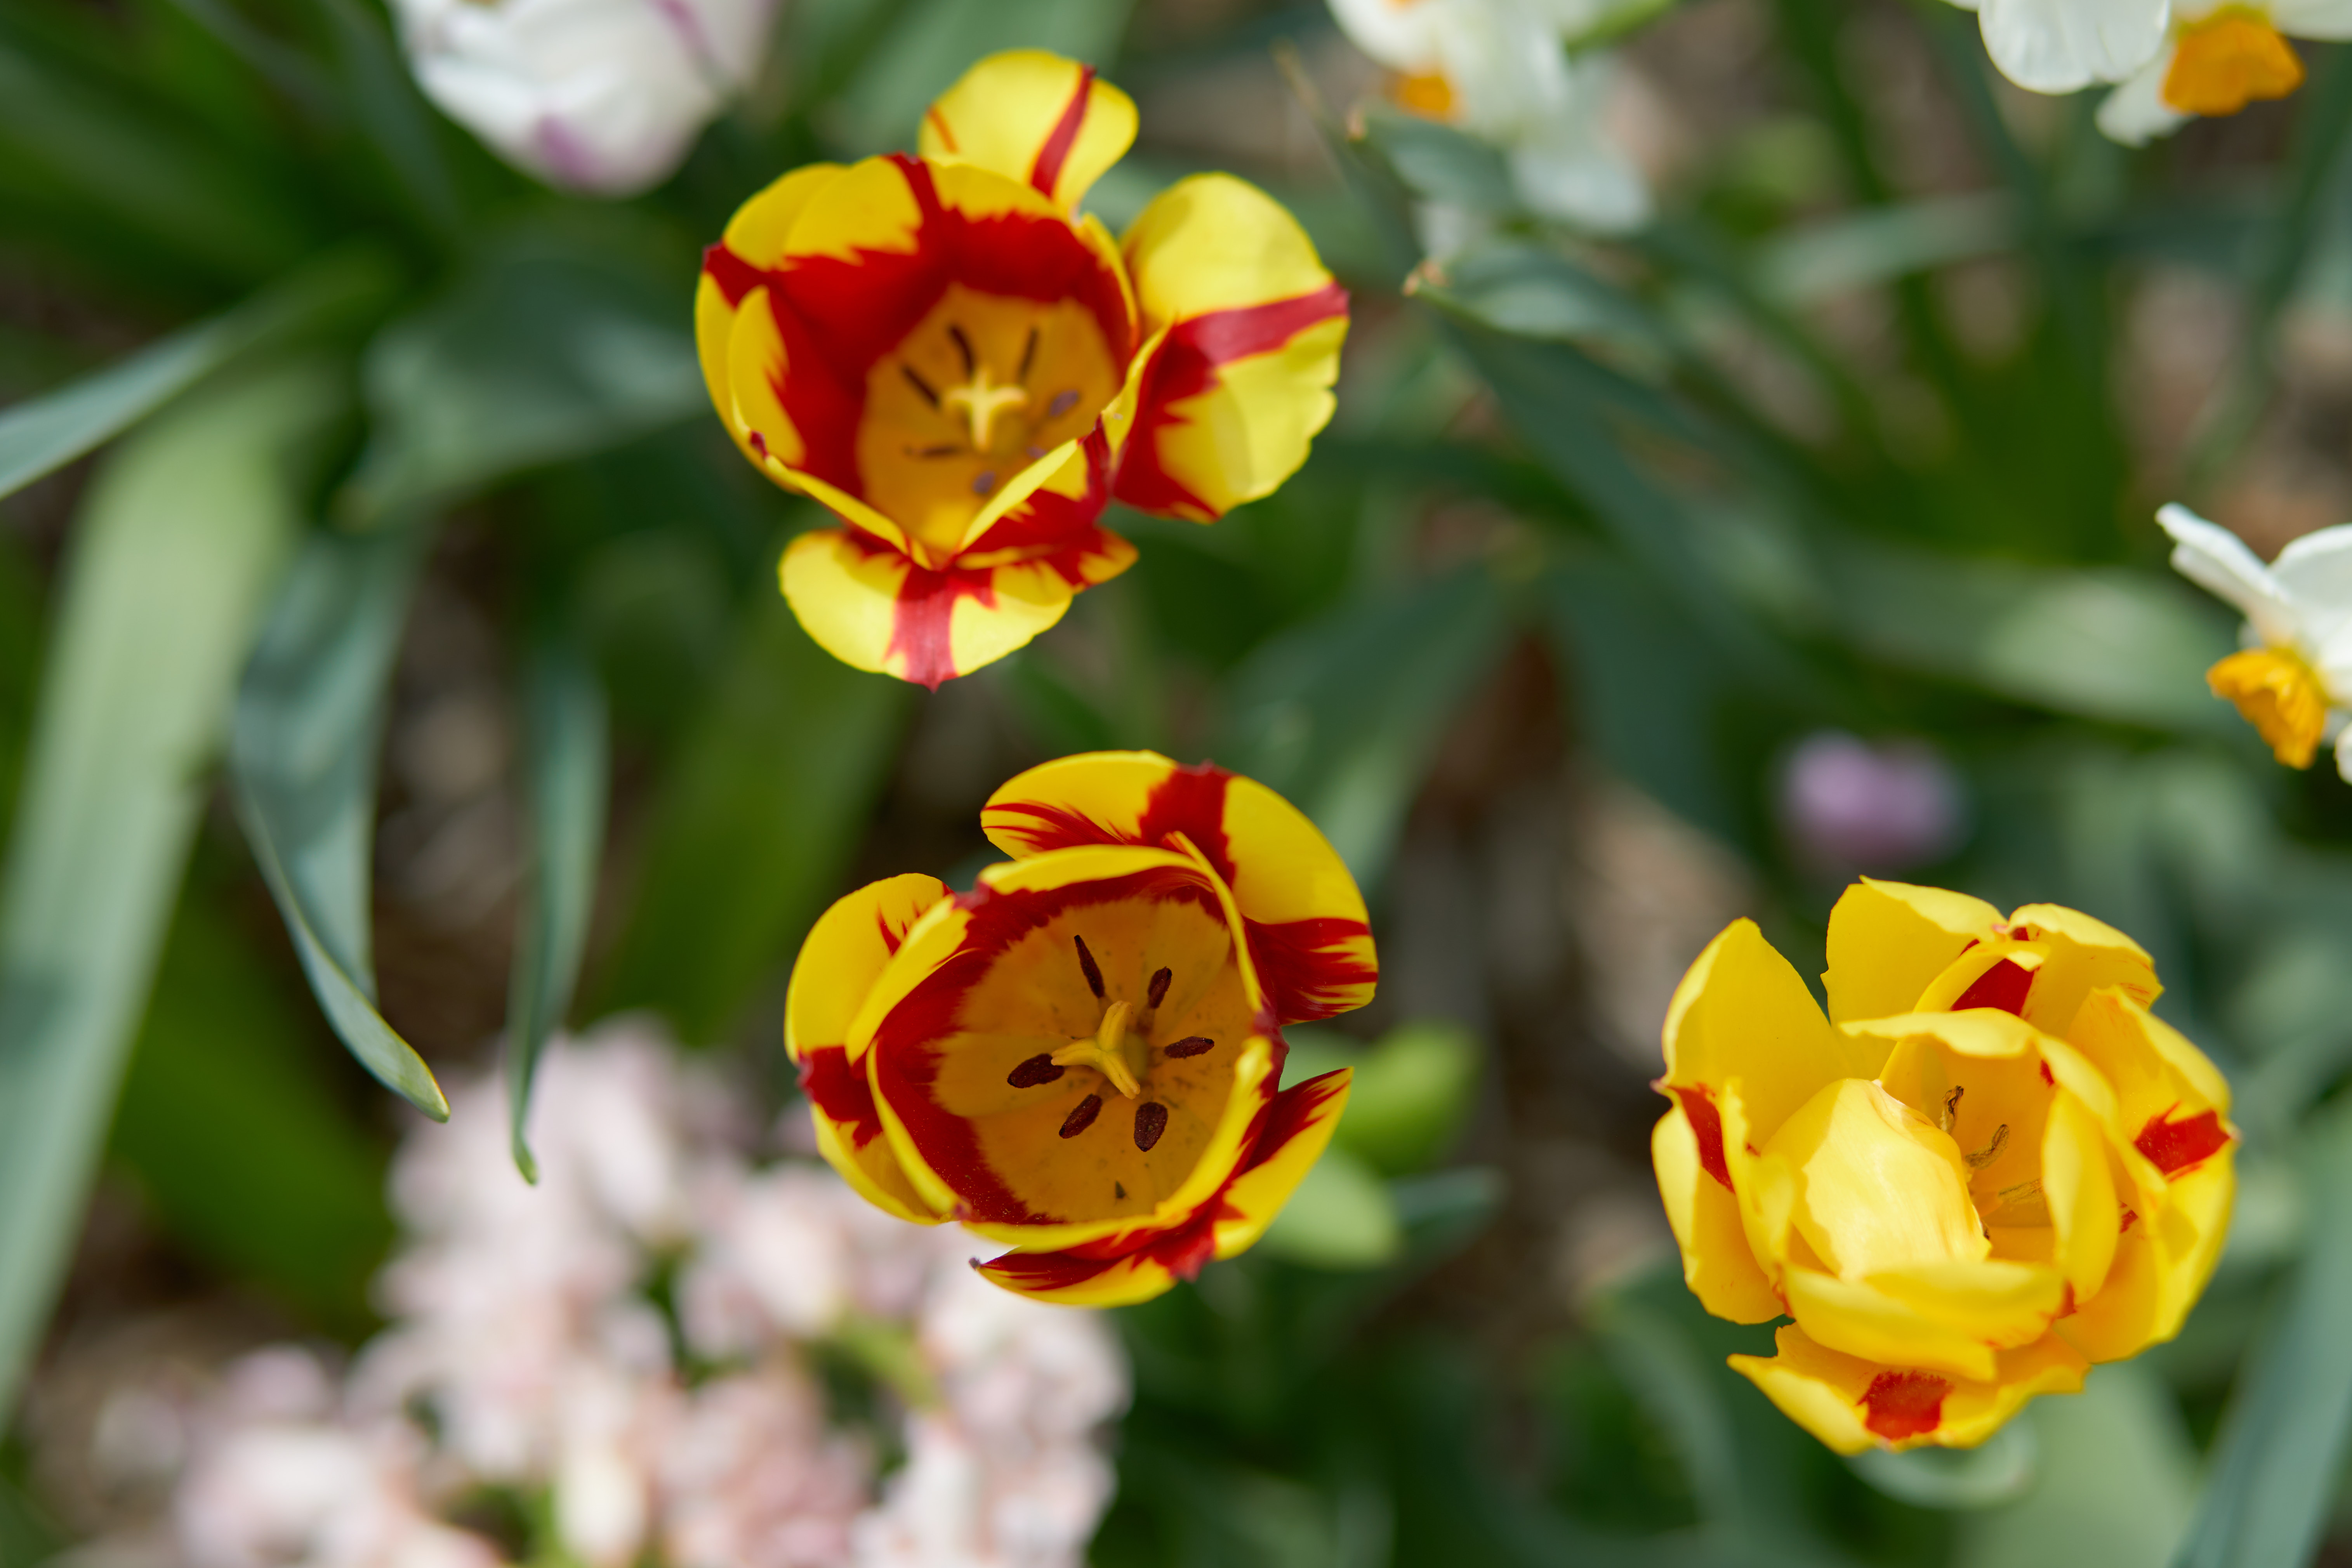 Red and yellow tulips in bloom.